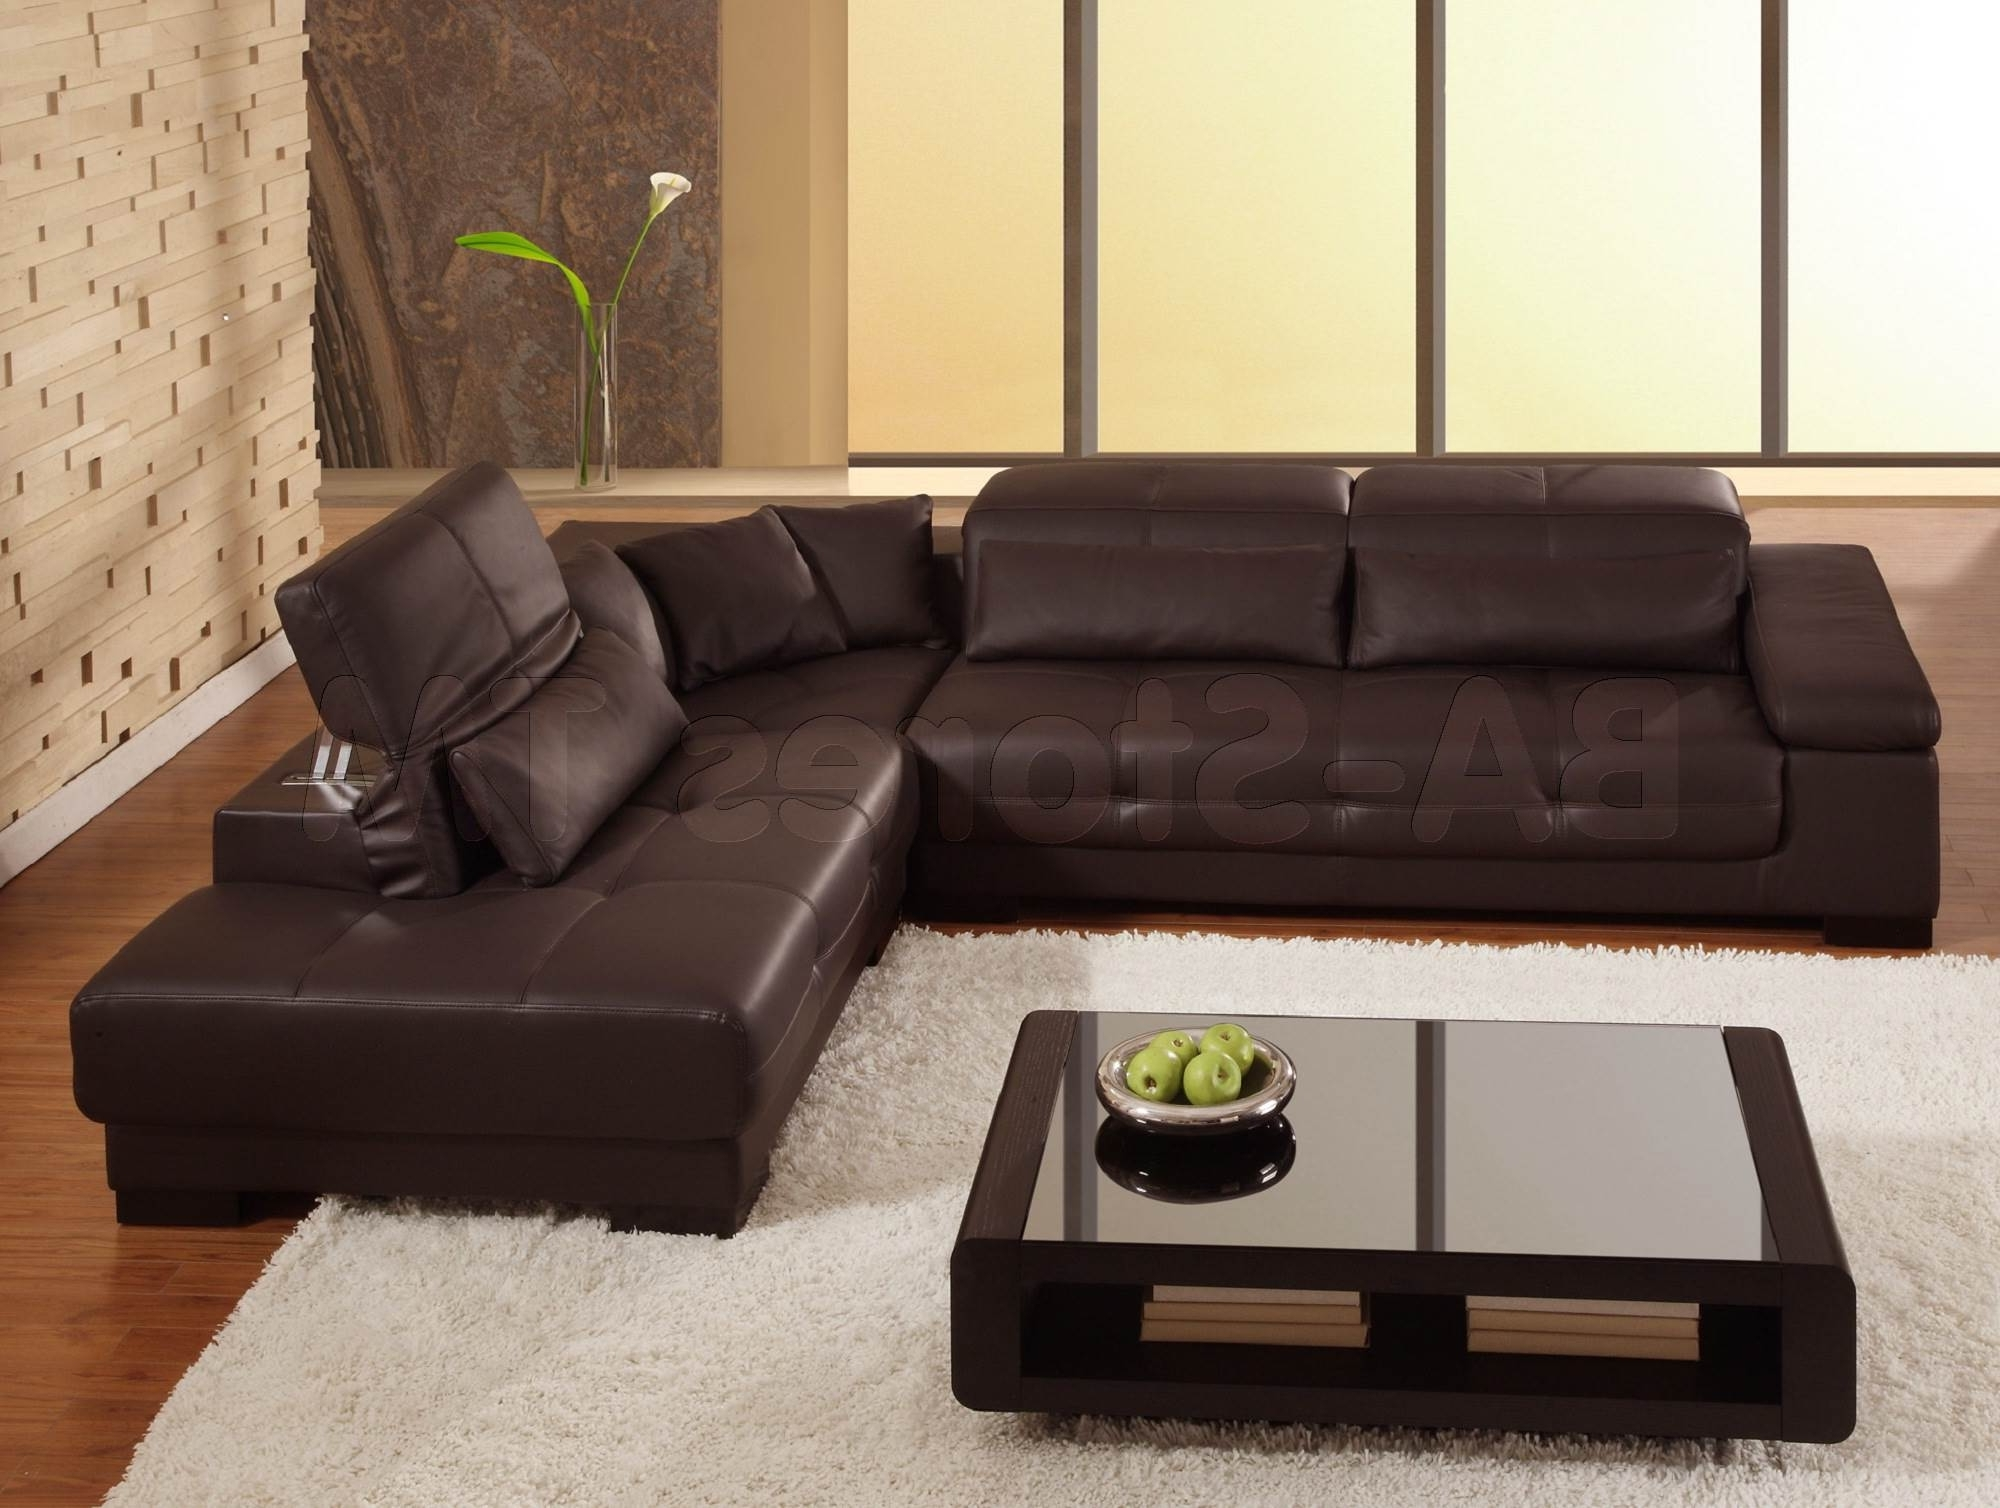 Clearance Sectional Sofas Within Most Recently Released Sectional Sofa Design: Top Rate Sectional Sofas Clearance Leather (View 5 of 15)